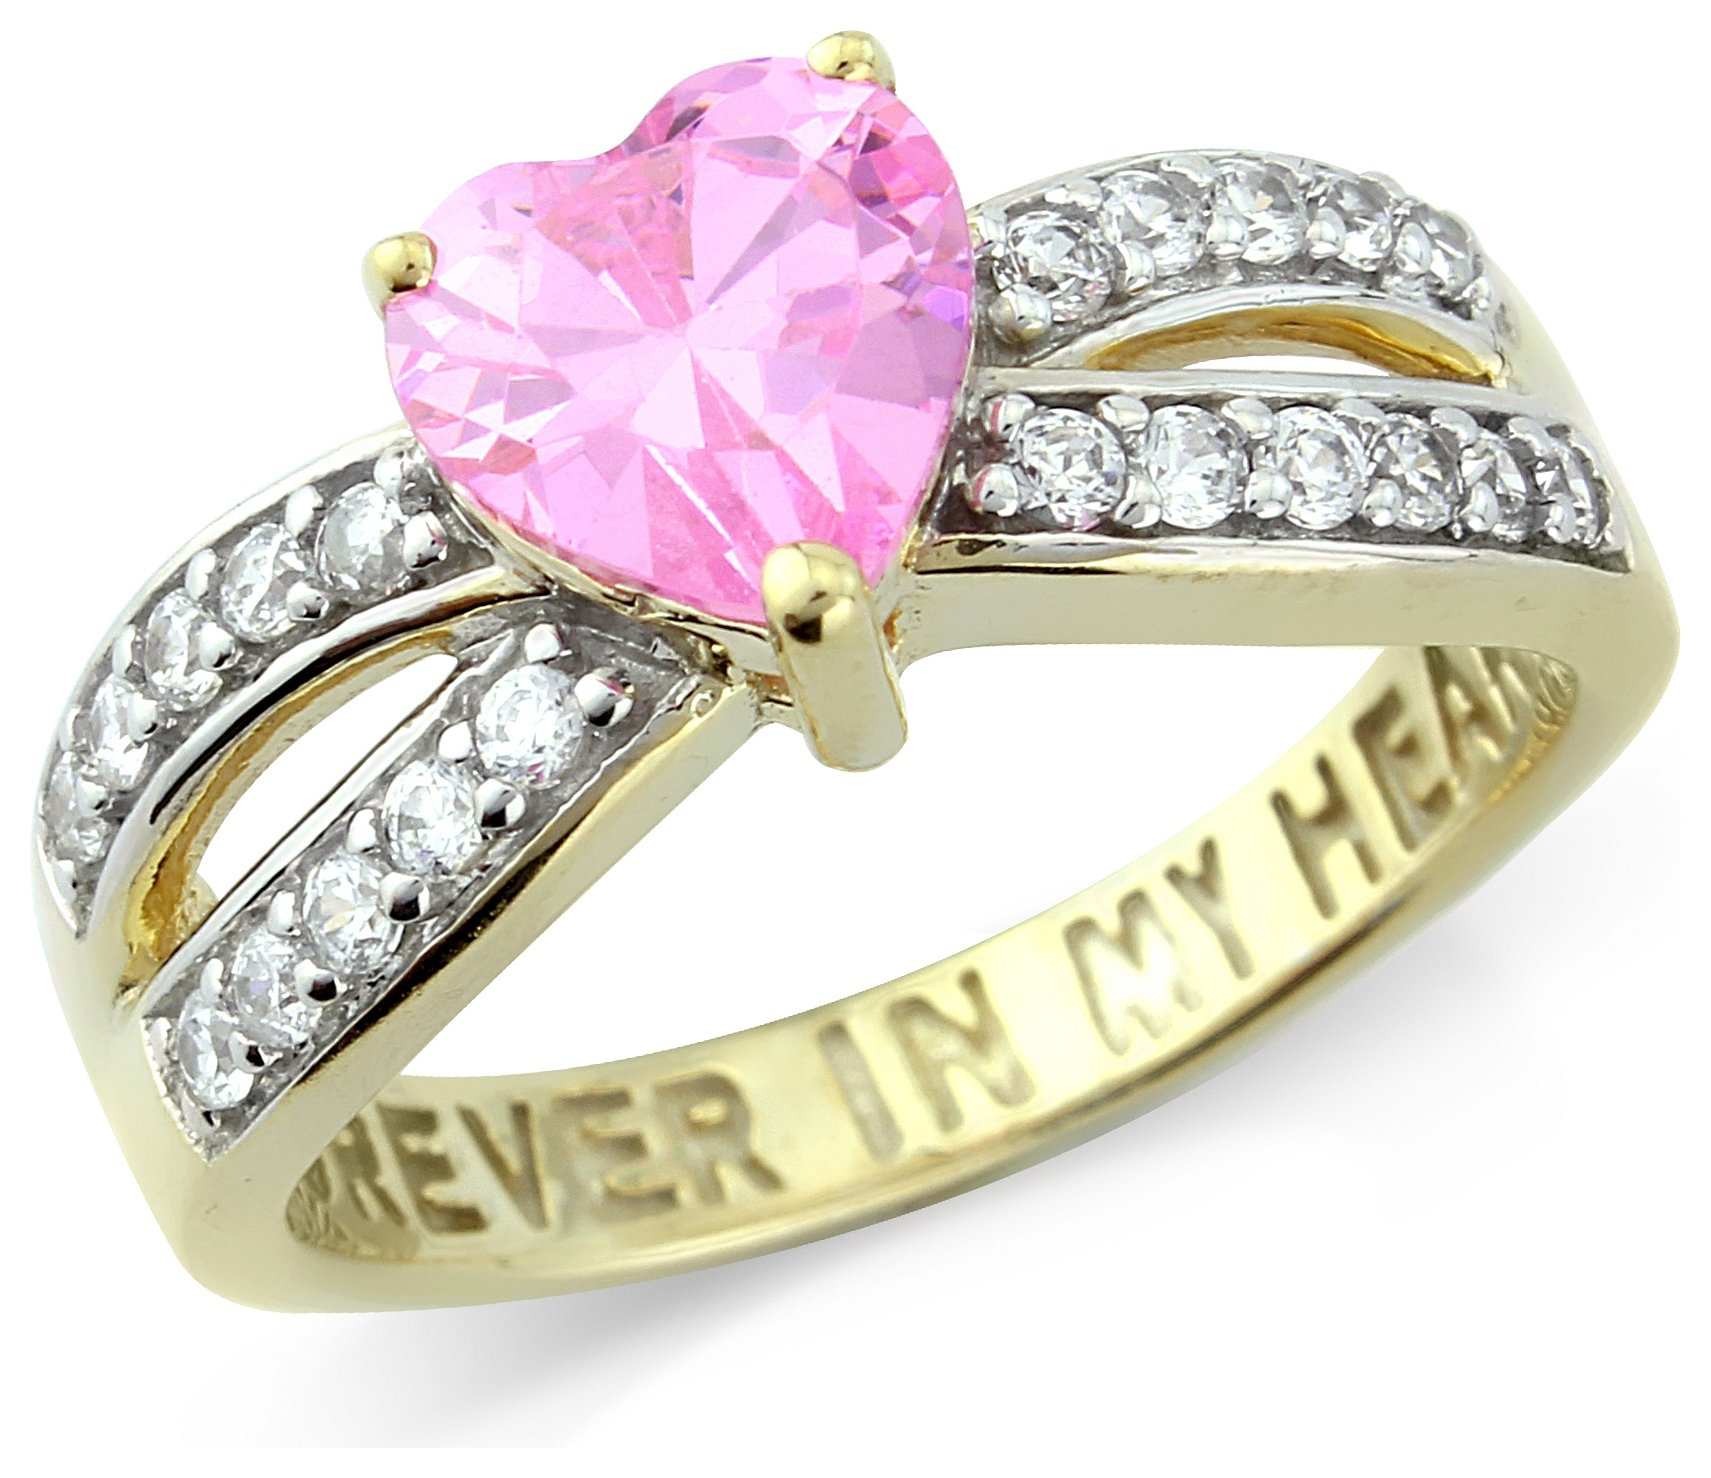 Buy Sterling Silver Forever in My Heart CZ Ring Size P at